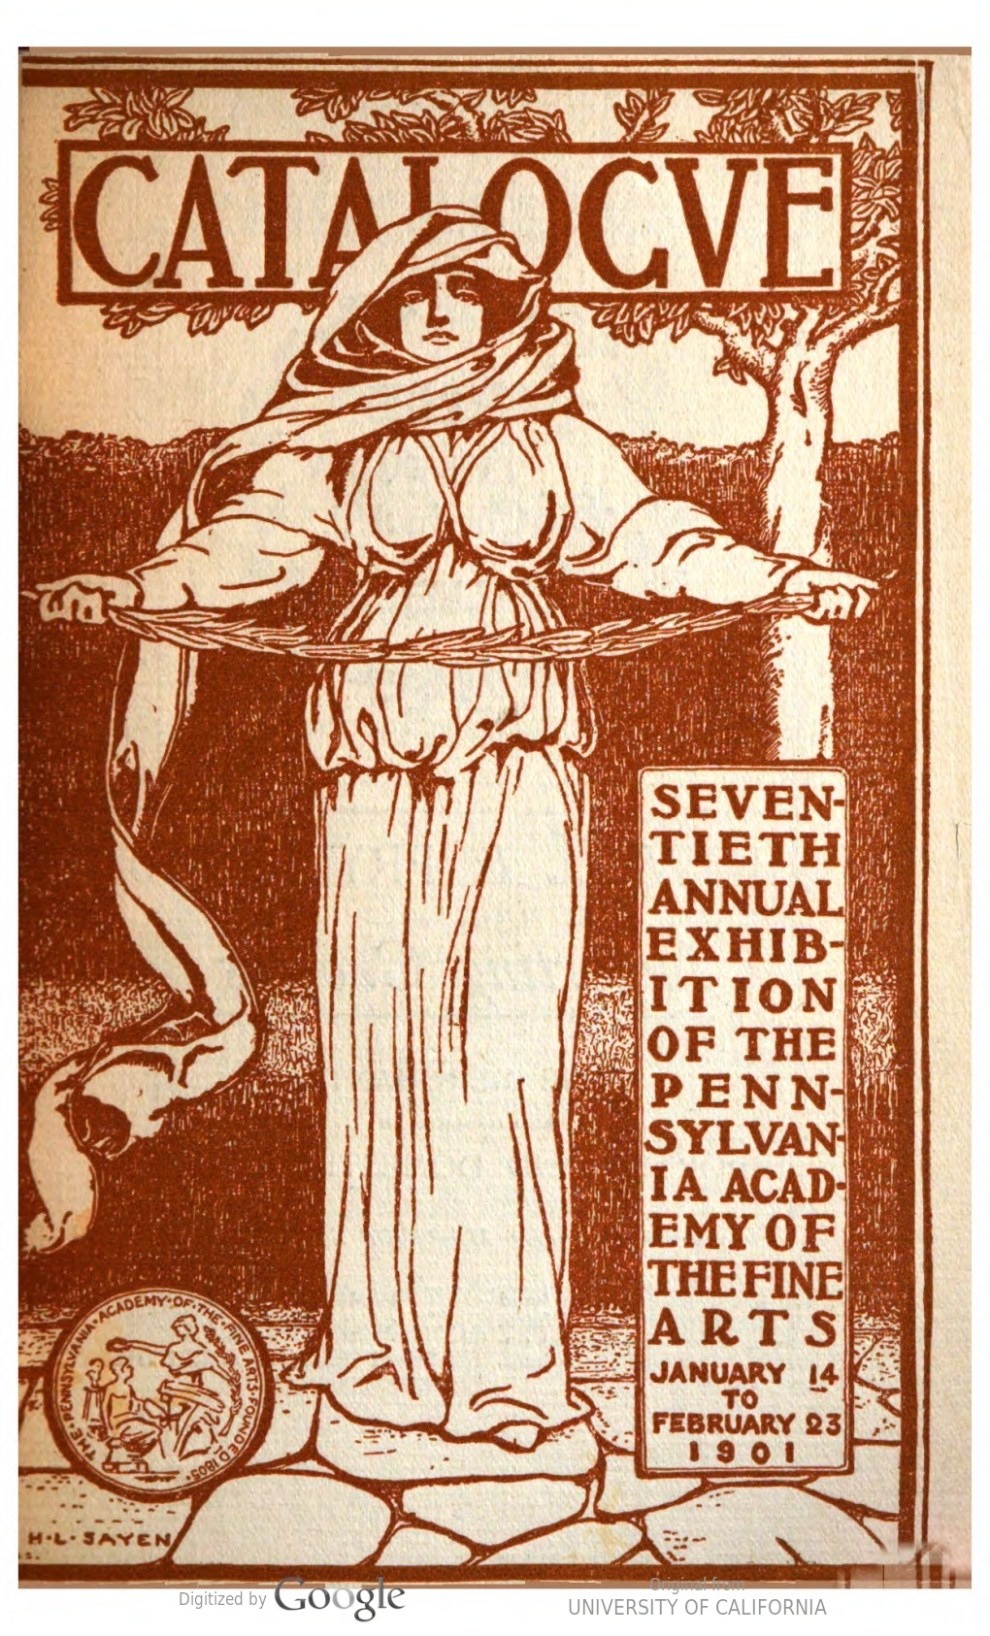 "1901 Pennsylvania Academy of the Fine Arts, Philadelphia, PA, ""Seventieth Annual Exhibition of the Pennsylvania Academy of The Fine Arts"", January 14-February 23"